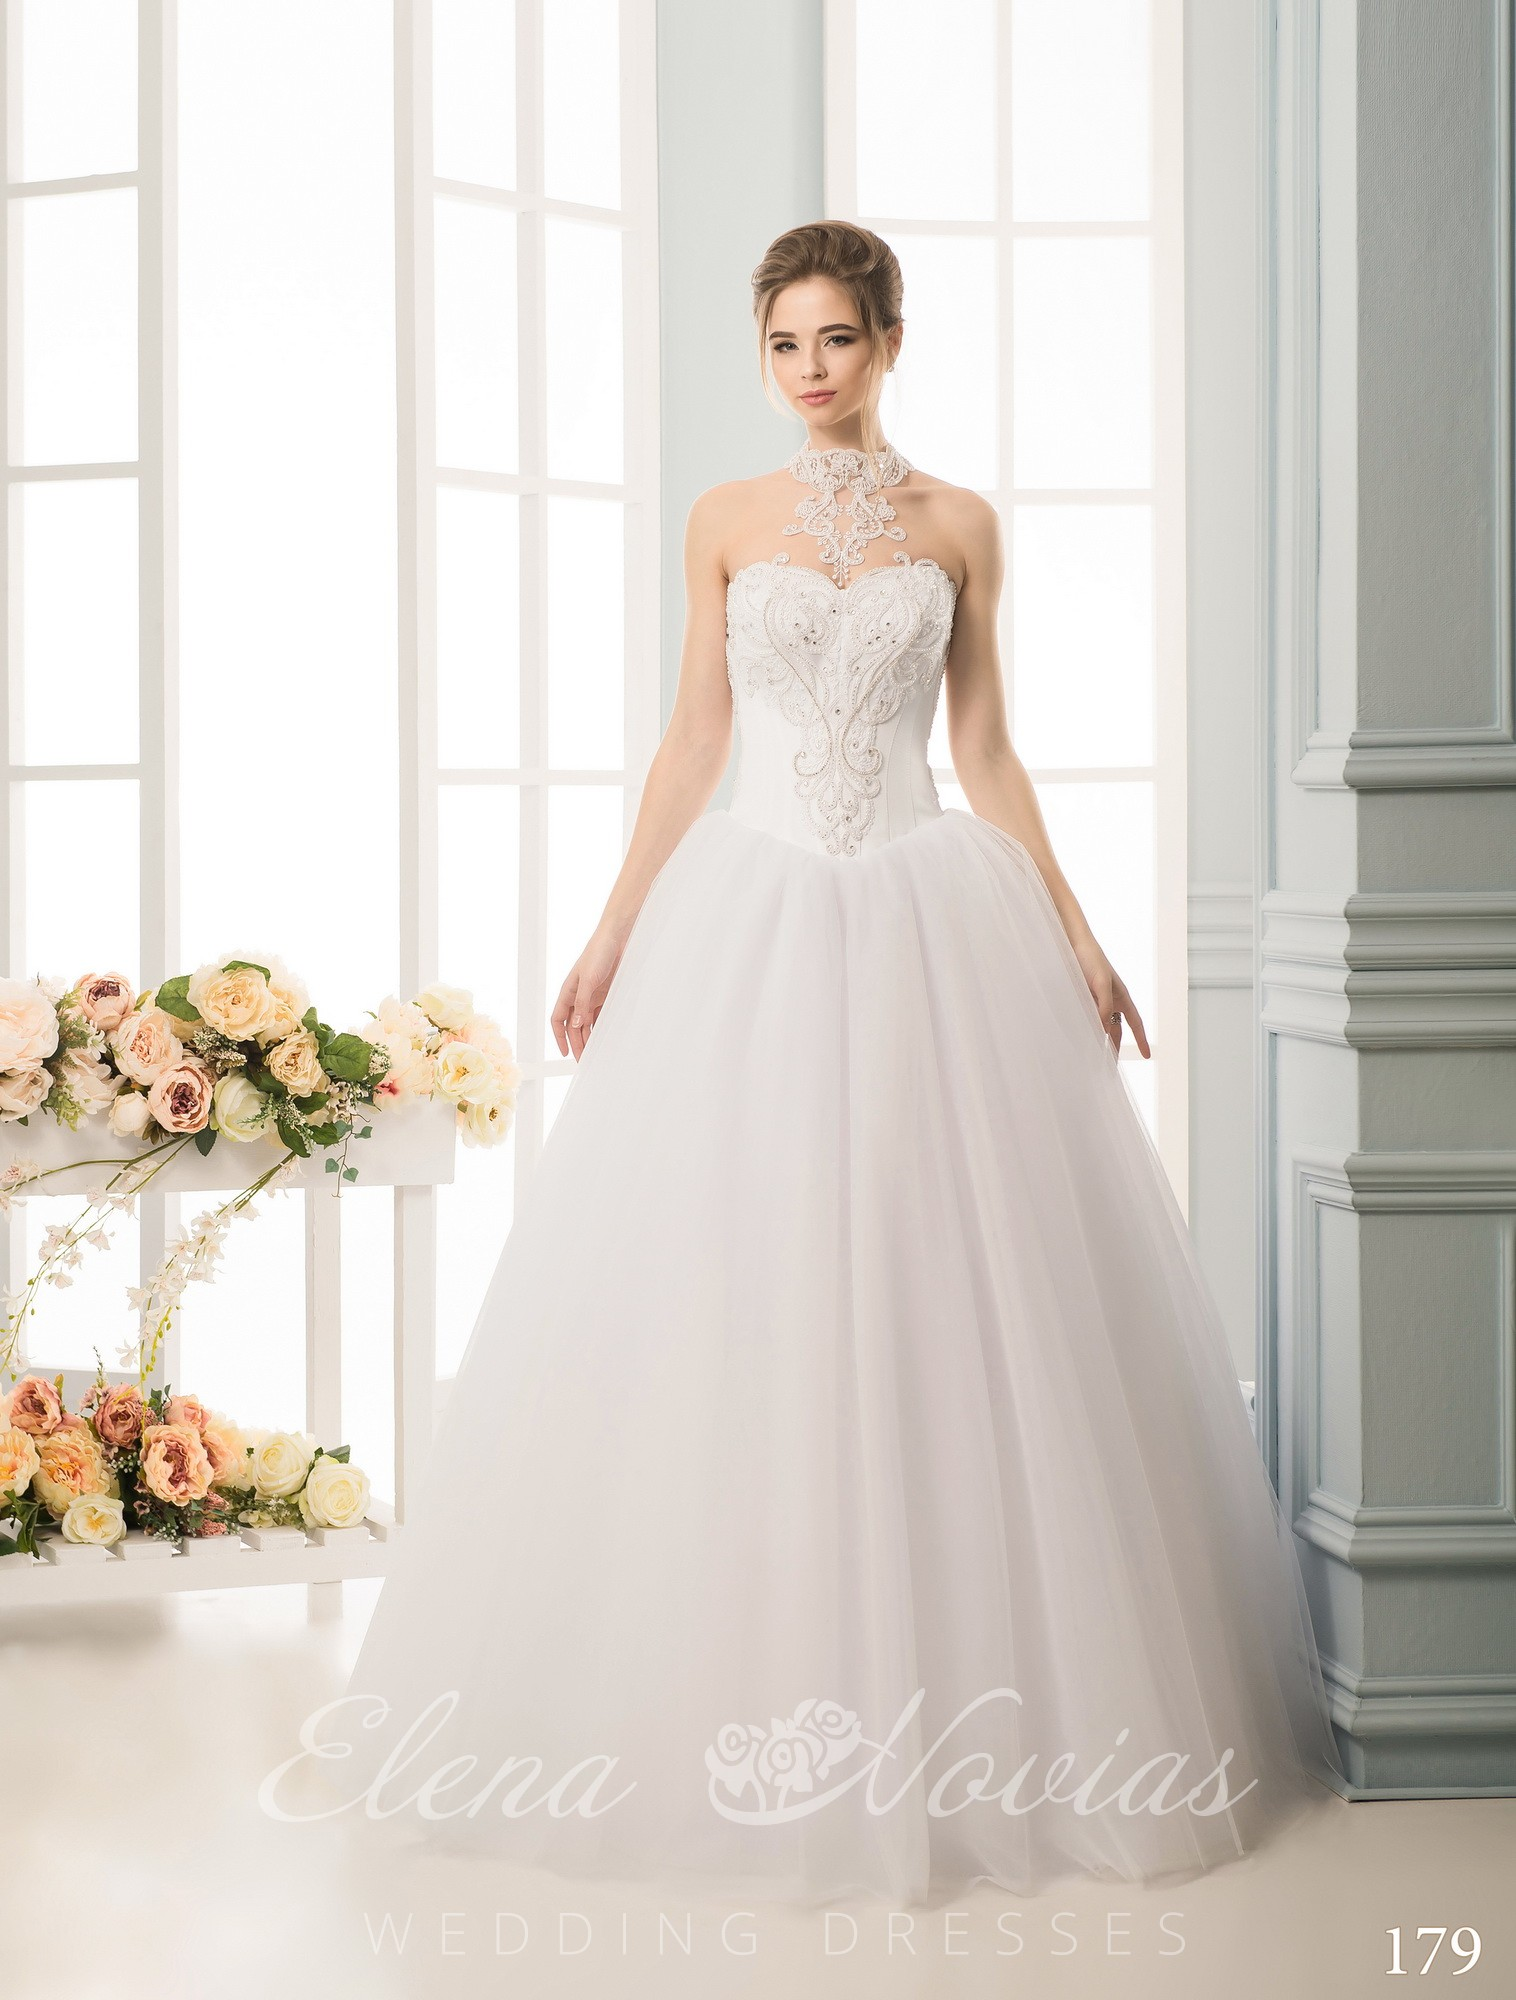 Wedding dress wholesale 179